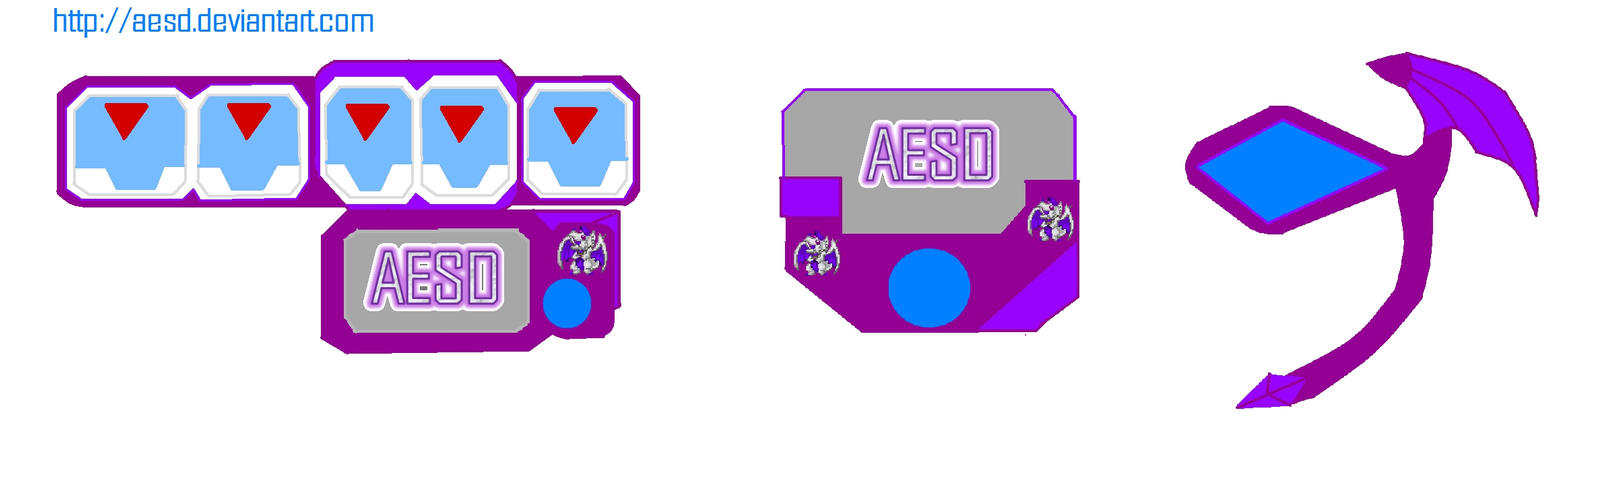 duel disk and d gazer for aesd by aesd on deviantart